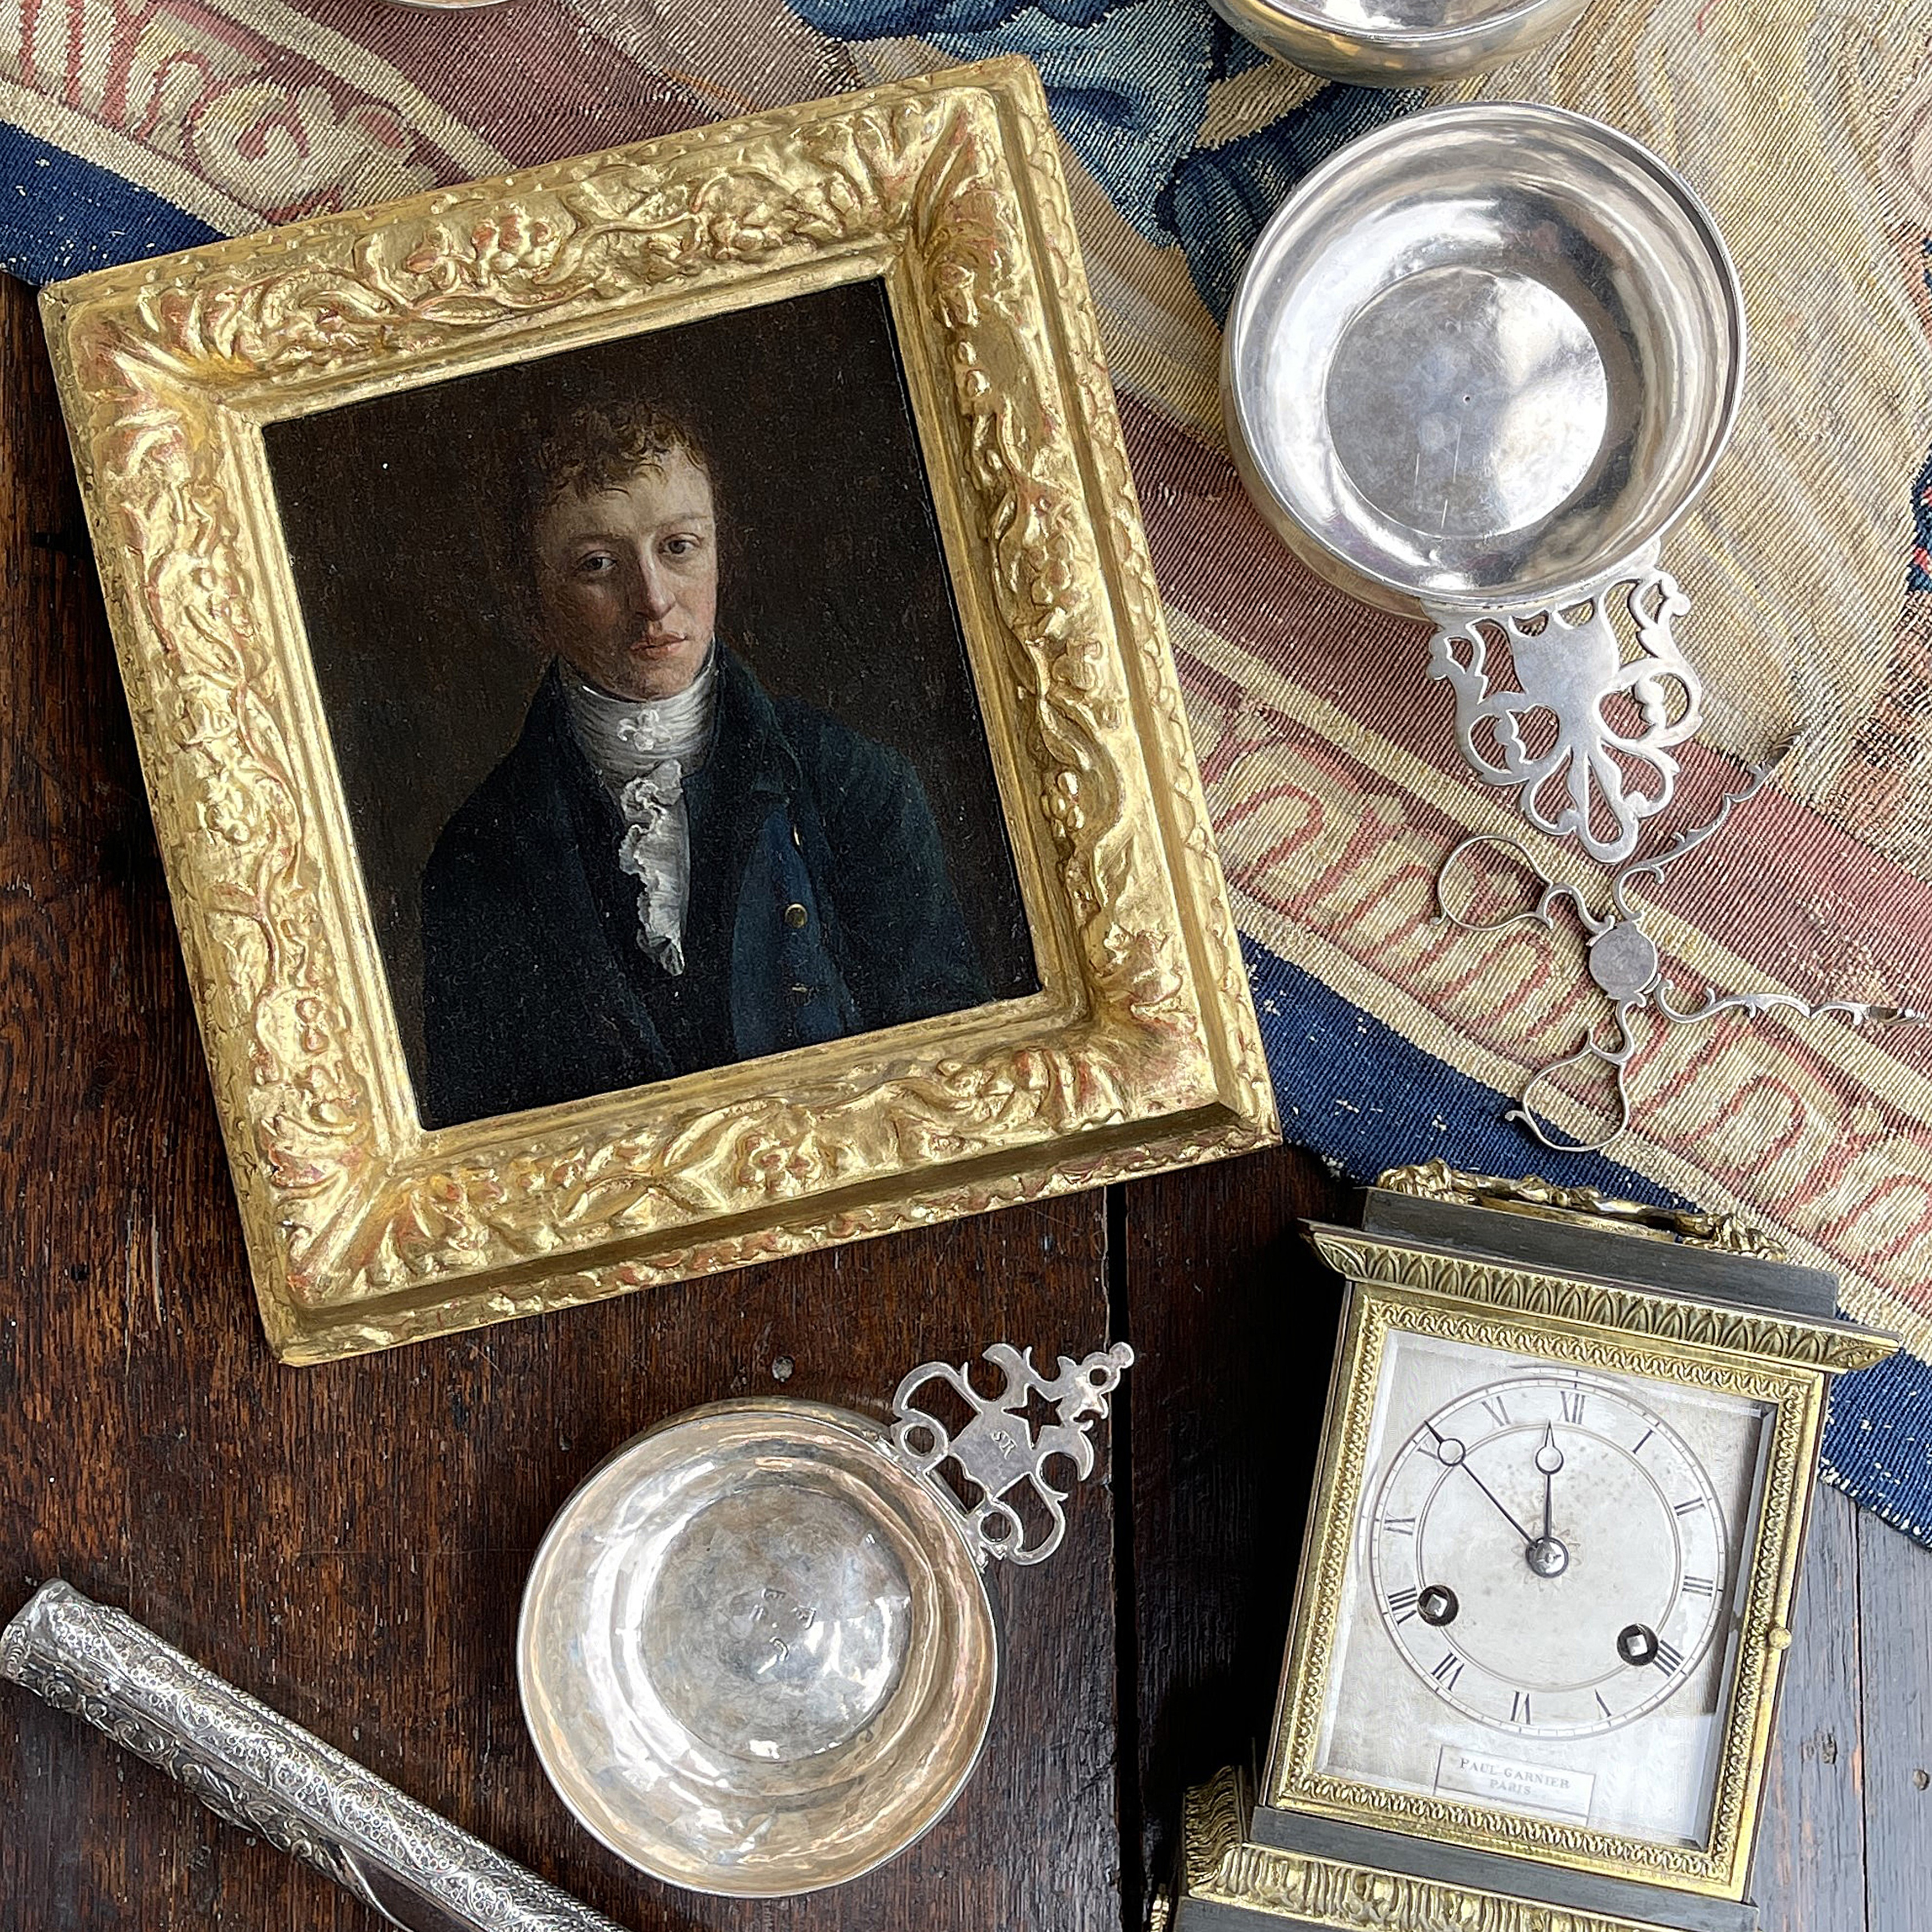 Silver, Clocks & Objets d'Art